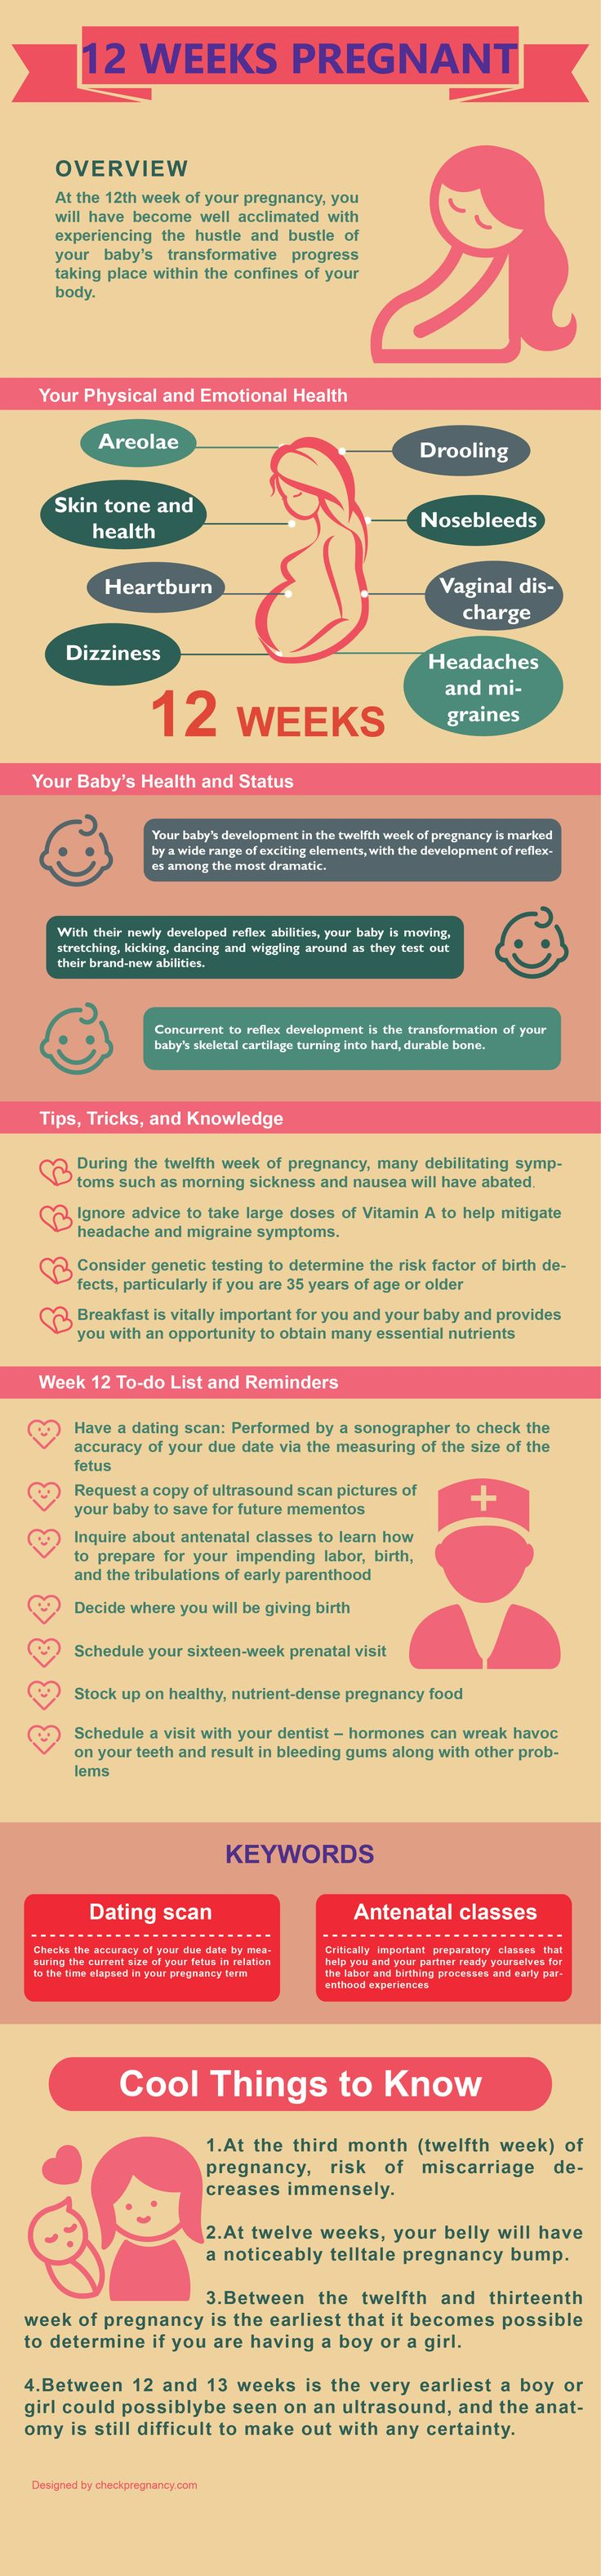 Tips for 12 weeks pregnant ~ !